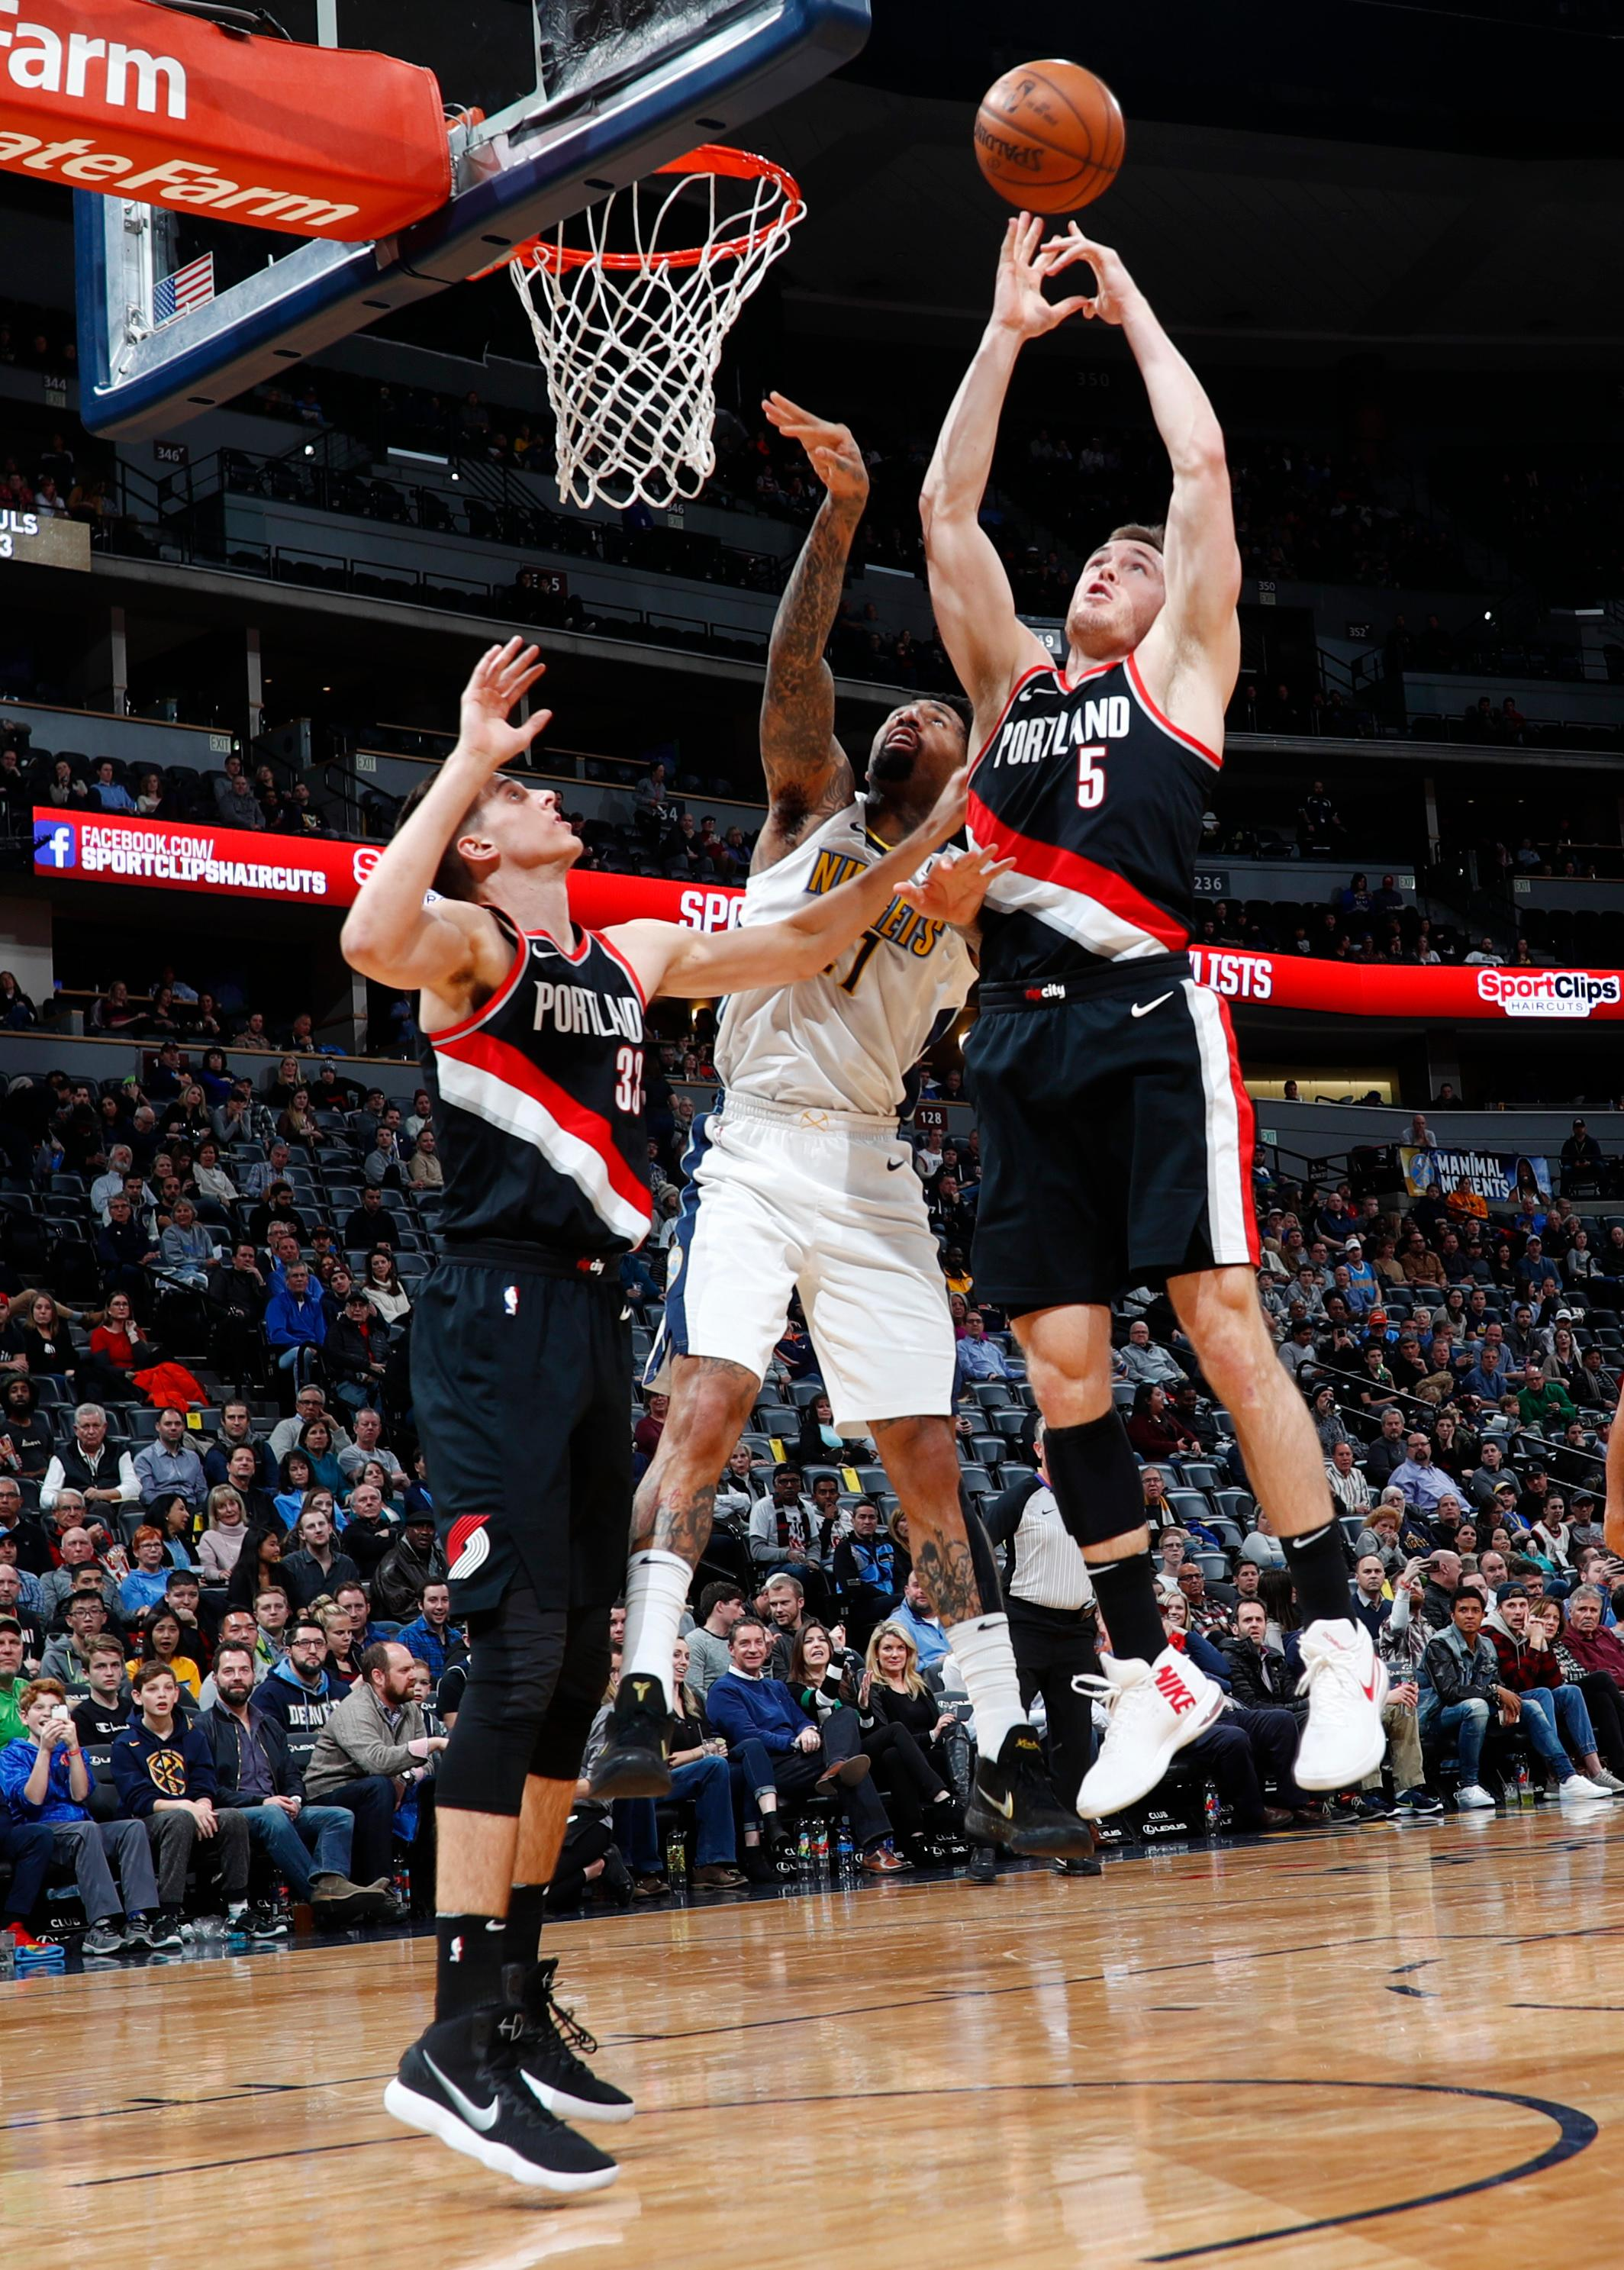 Denver Nuggets forward Wilson Chandler, center, fights for control of a rebound with Portland Trail Blazers center Zach Collins, left, and guard Pat Connaughton in the first half of an NBA basketball game Monday, Jan. 22, 2018, in Denver. (AP Photo/David Zalubowski)